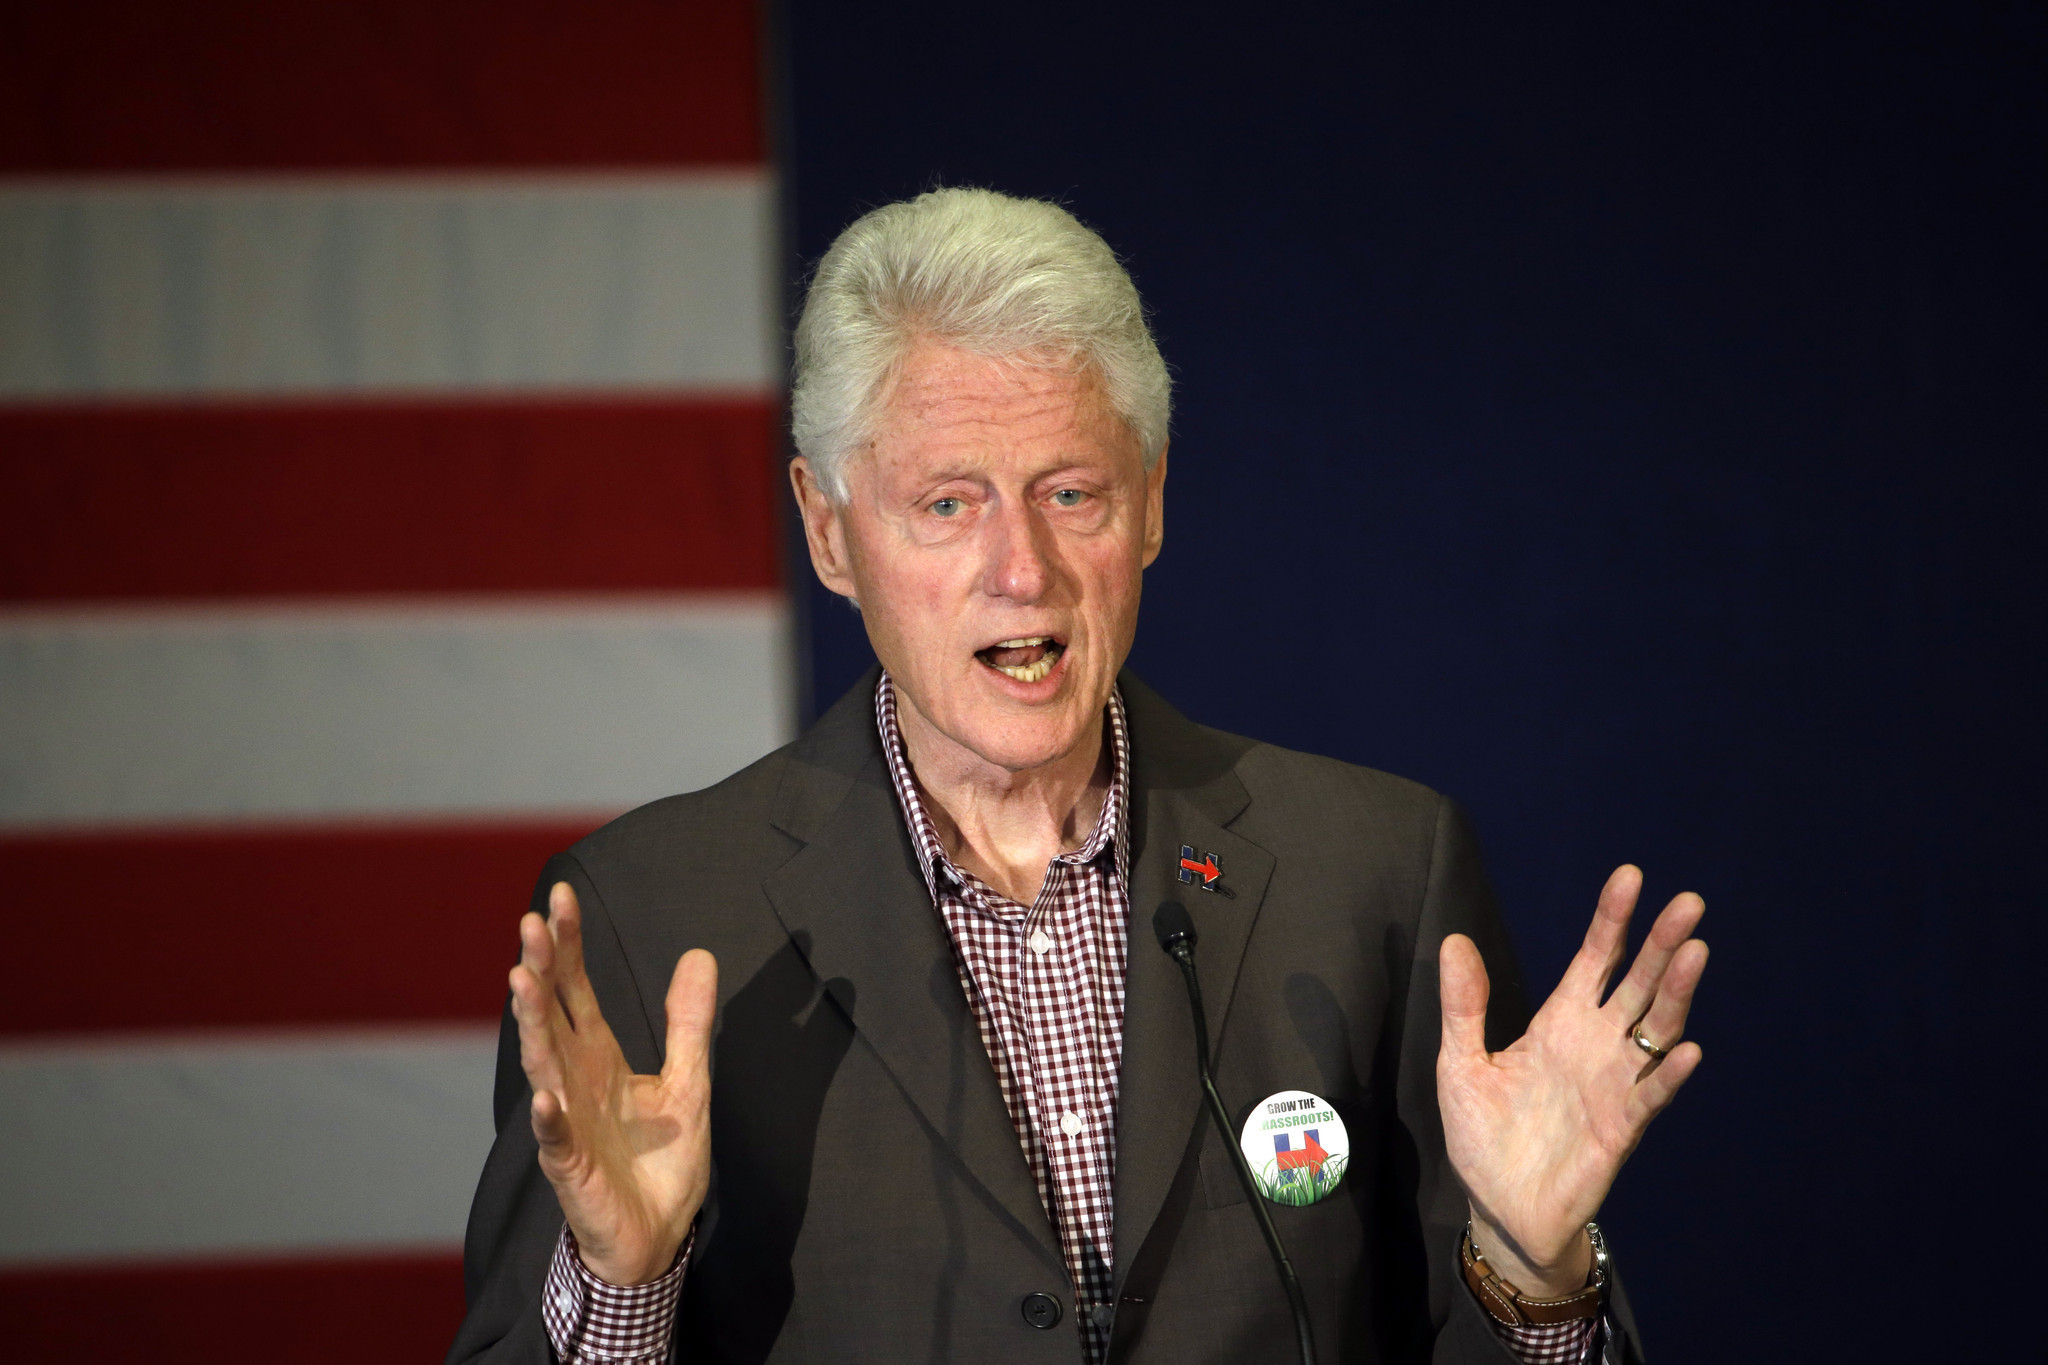 2048x1365 Bill Clinton brushes aside Donald Trump's comments about former president's  infidelity - LA Times